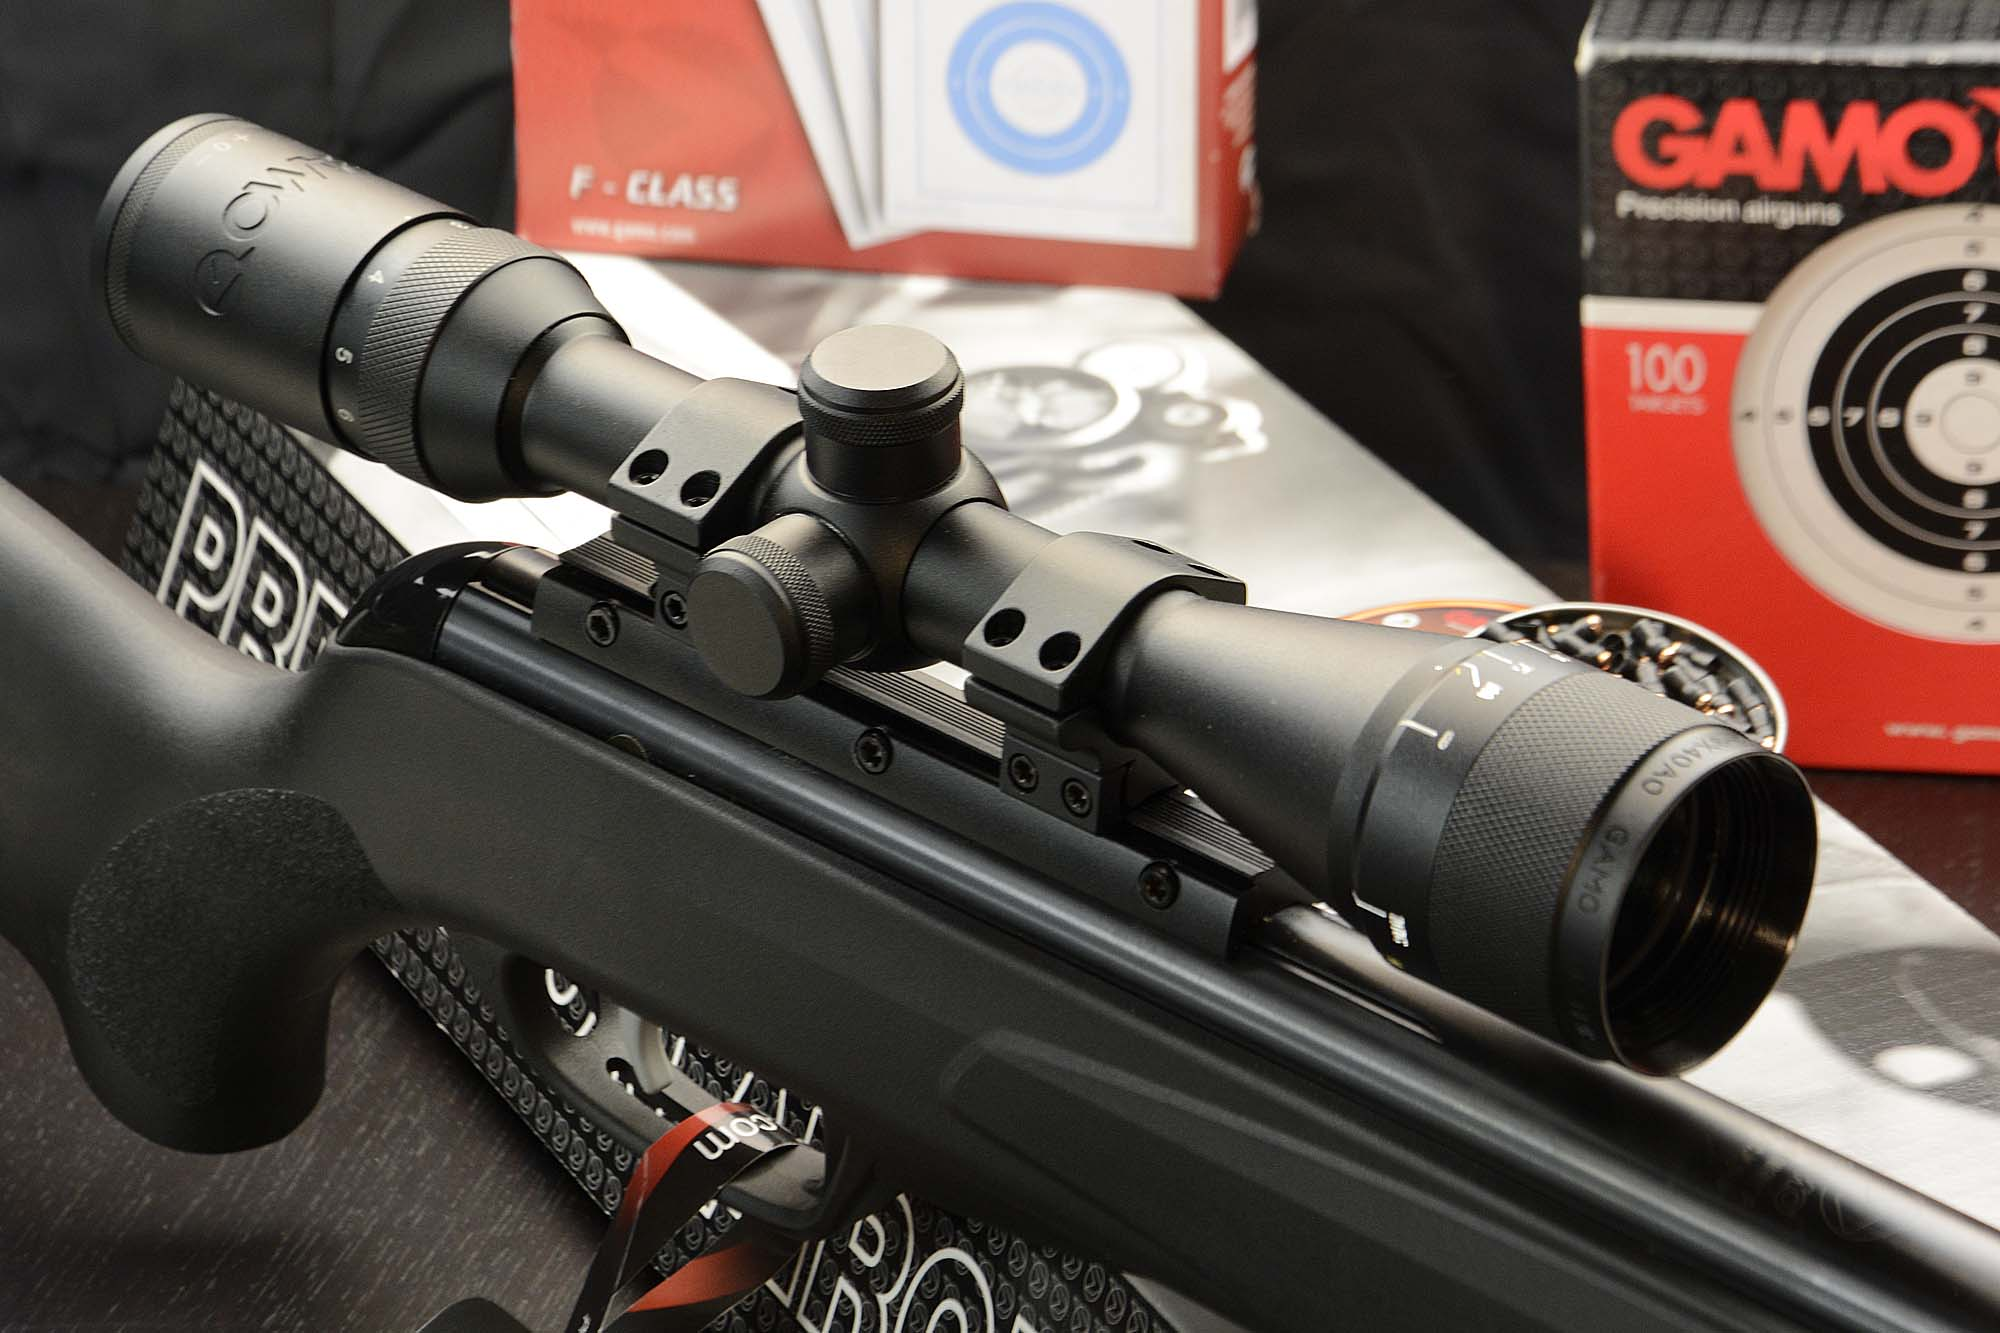 Gamo black knight seite 2 all4shooters.com